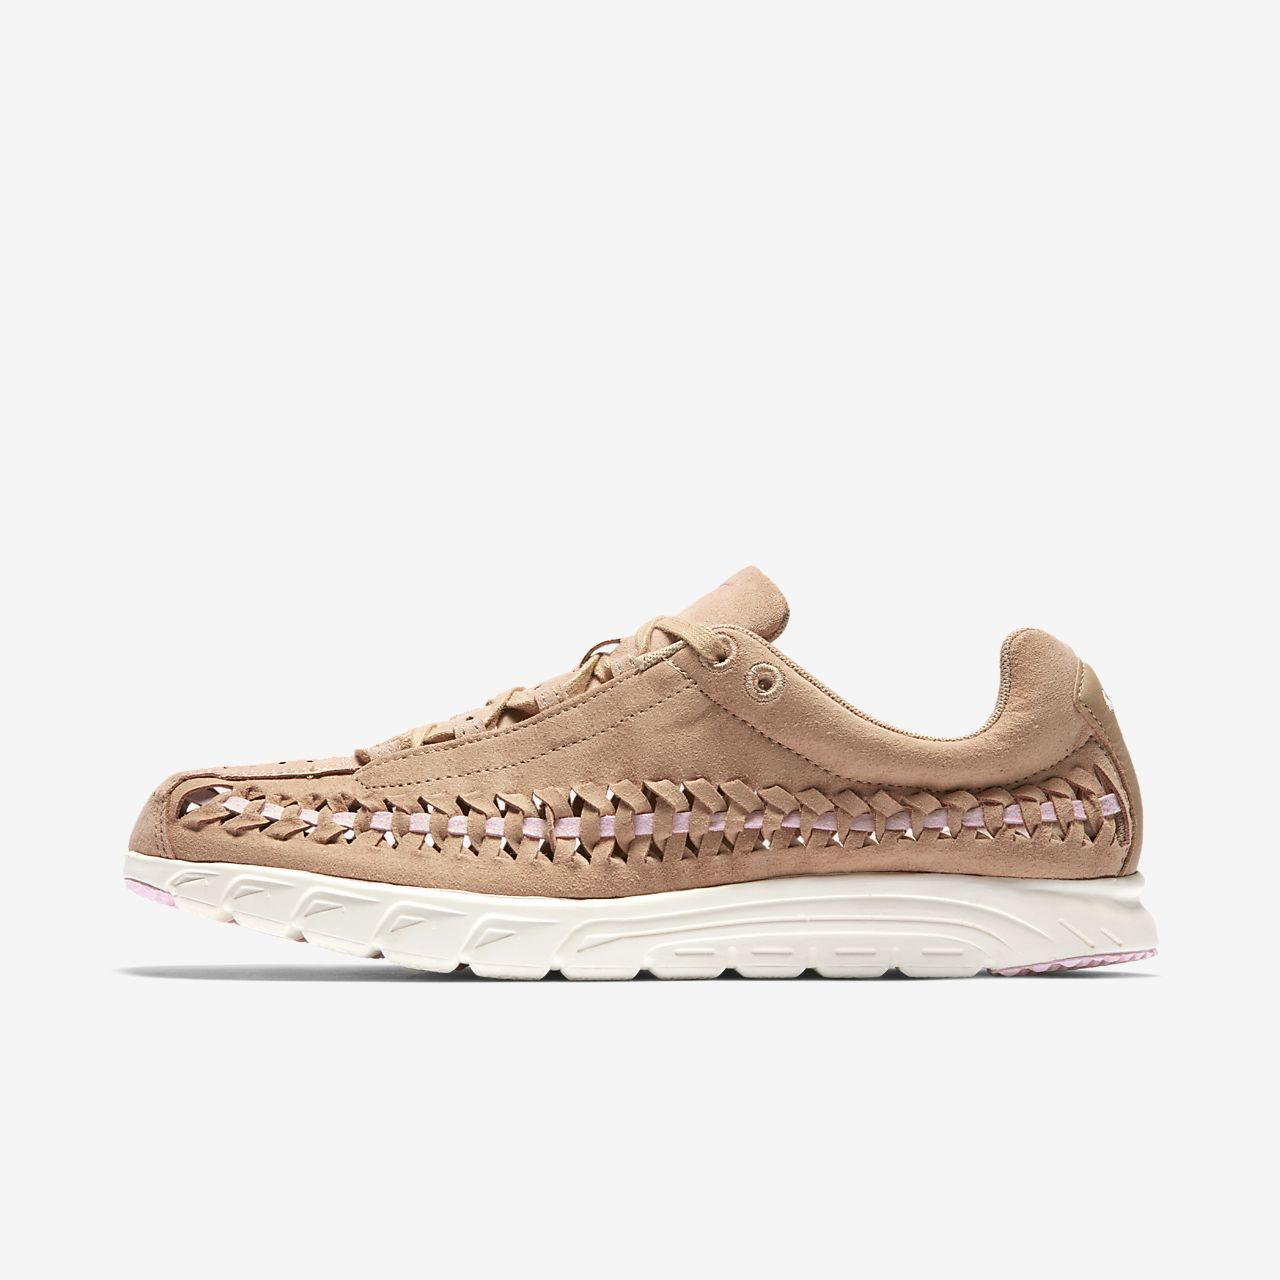 ... Chaussure Nike Mayfly Woven pour Femme